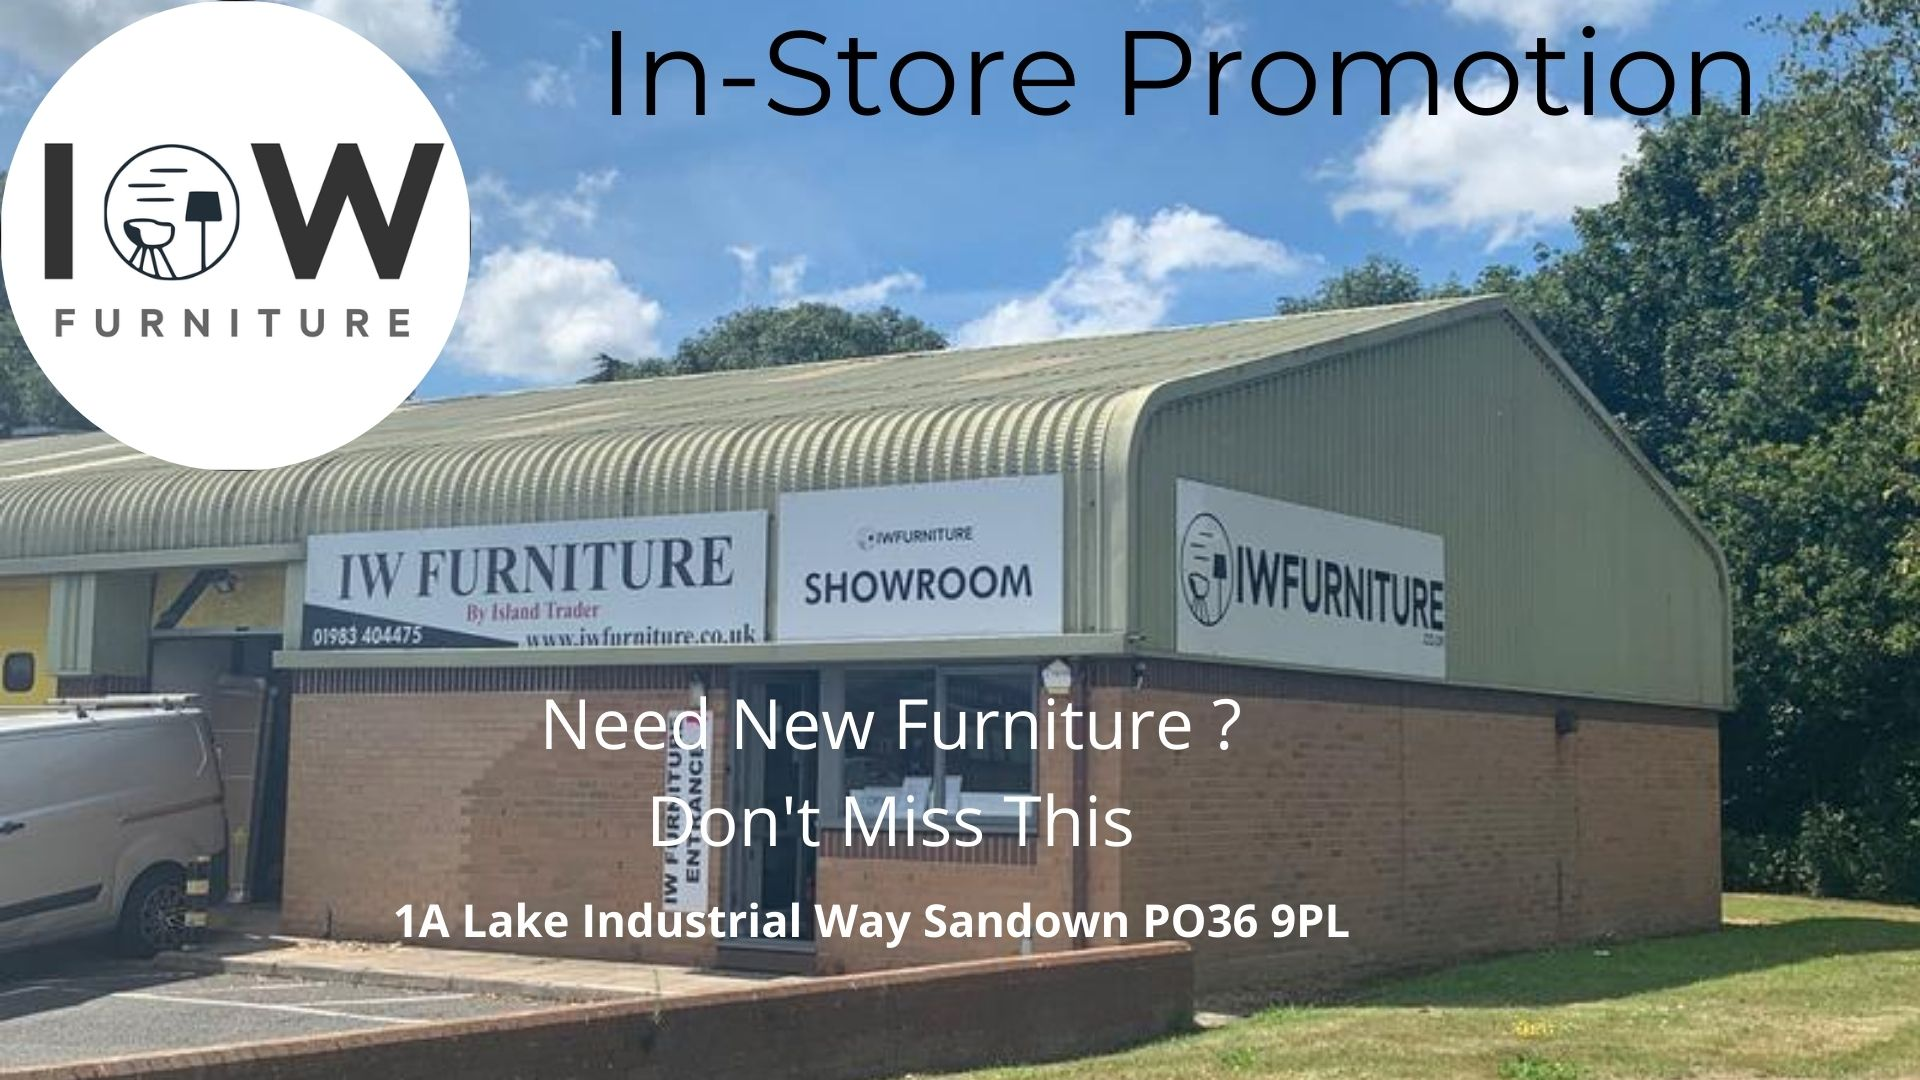 In Store Promotion - IW Furniture